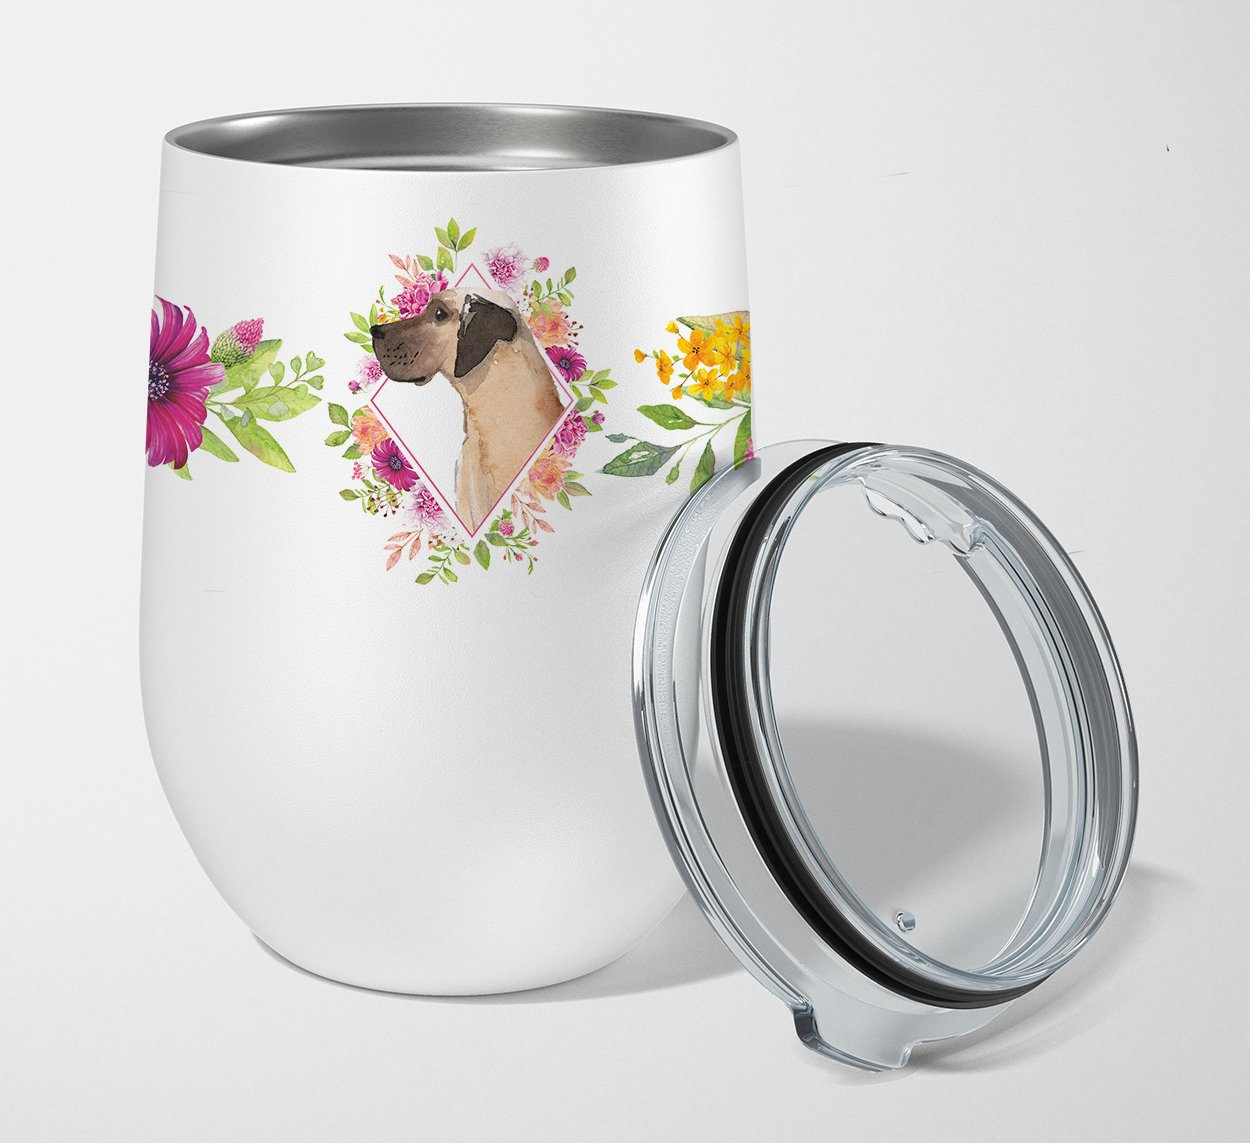 Fawn Great Dane Pink Flowers Stainless Steel 12 oz Stemless Wine Glass CK4234TBL12 by Caroline's Treasures